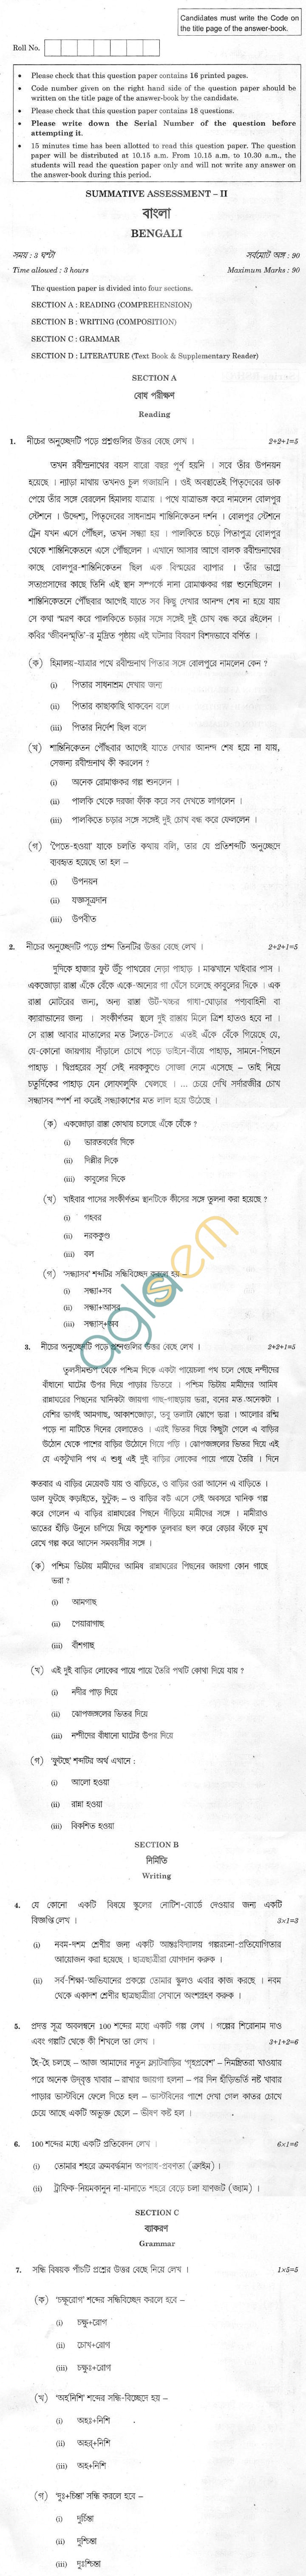 CBSE Compartment Exam 2013 Class X Question Paper - Bengali